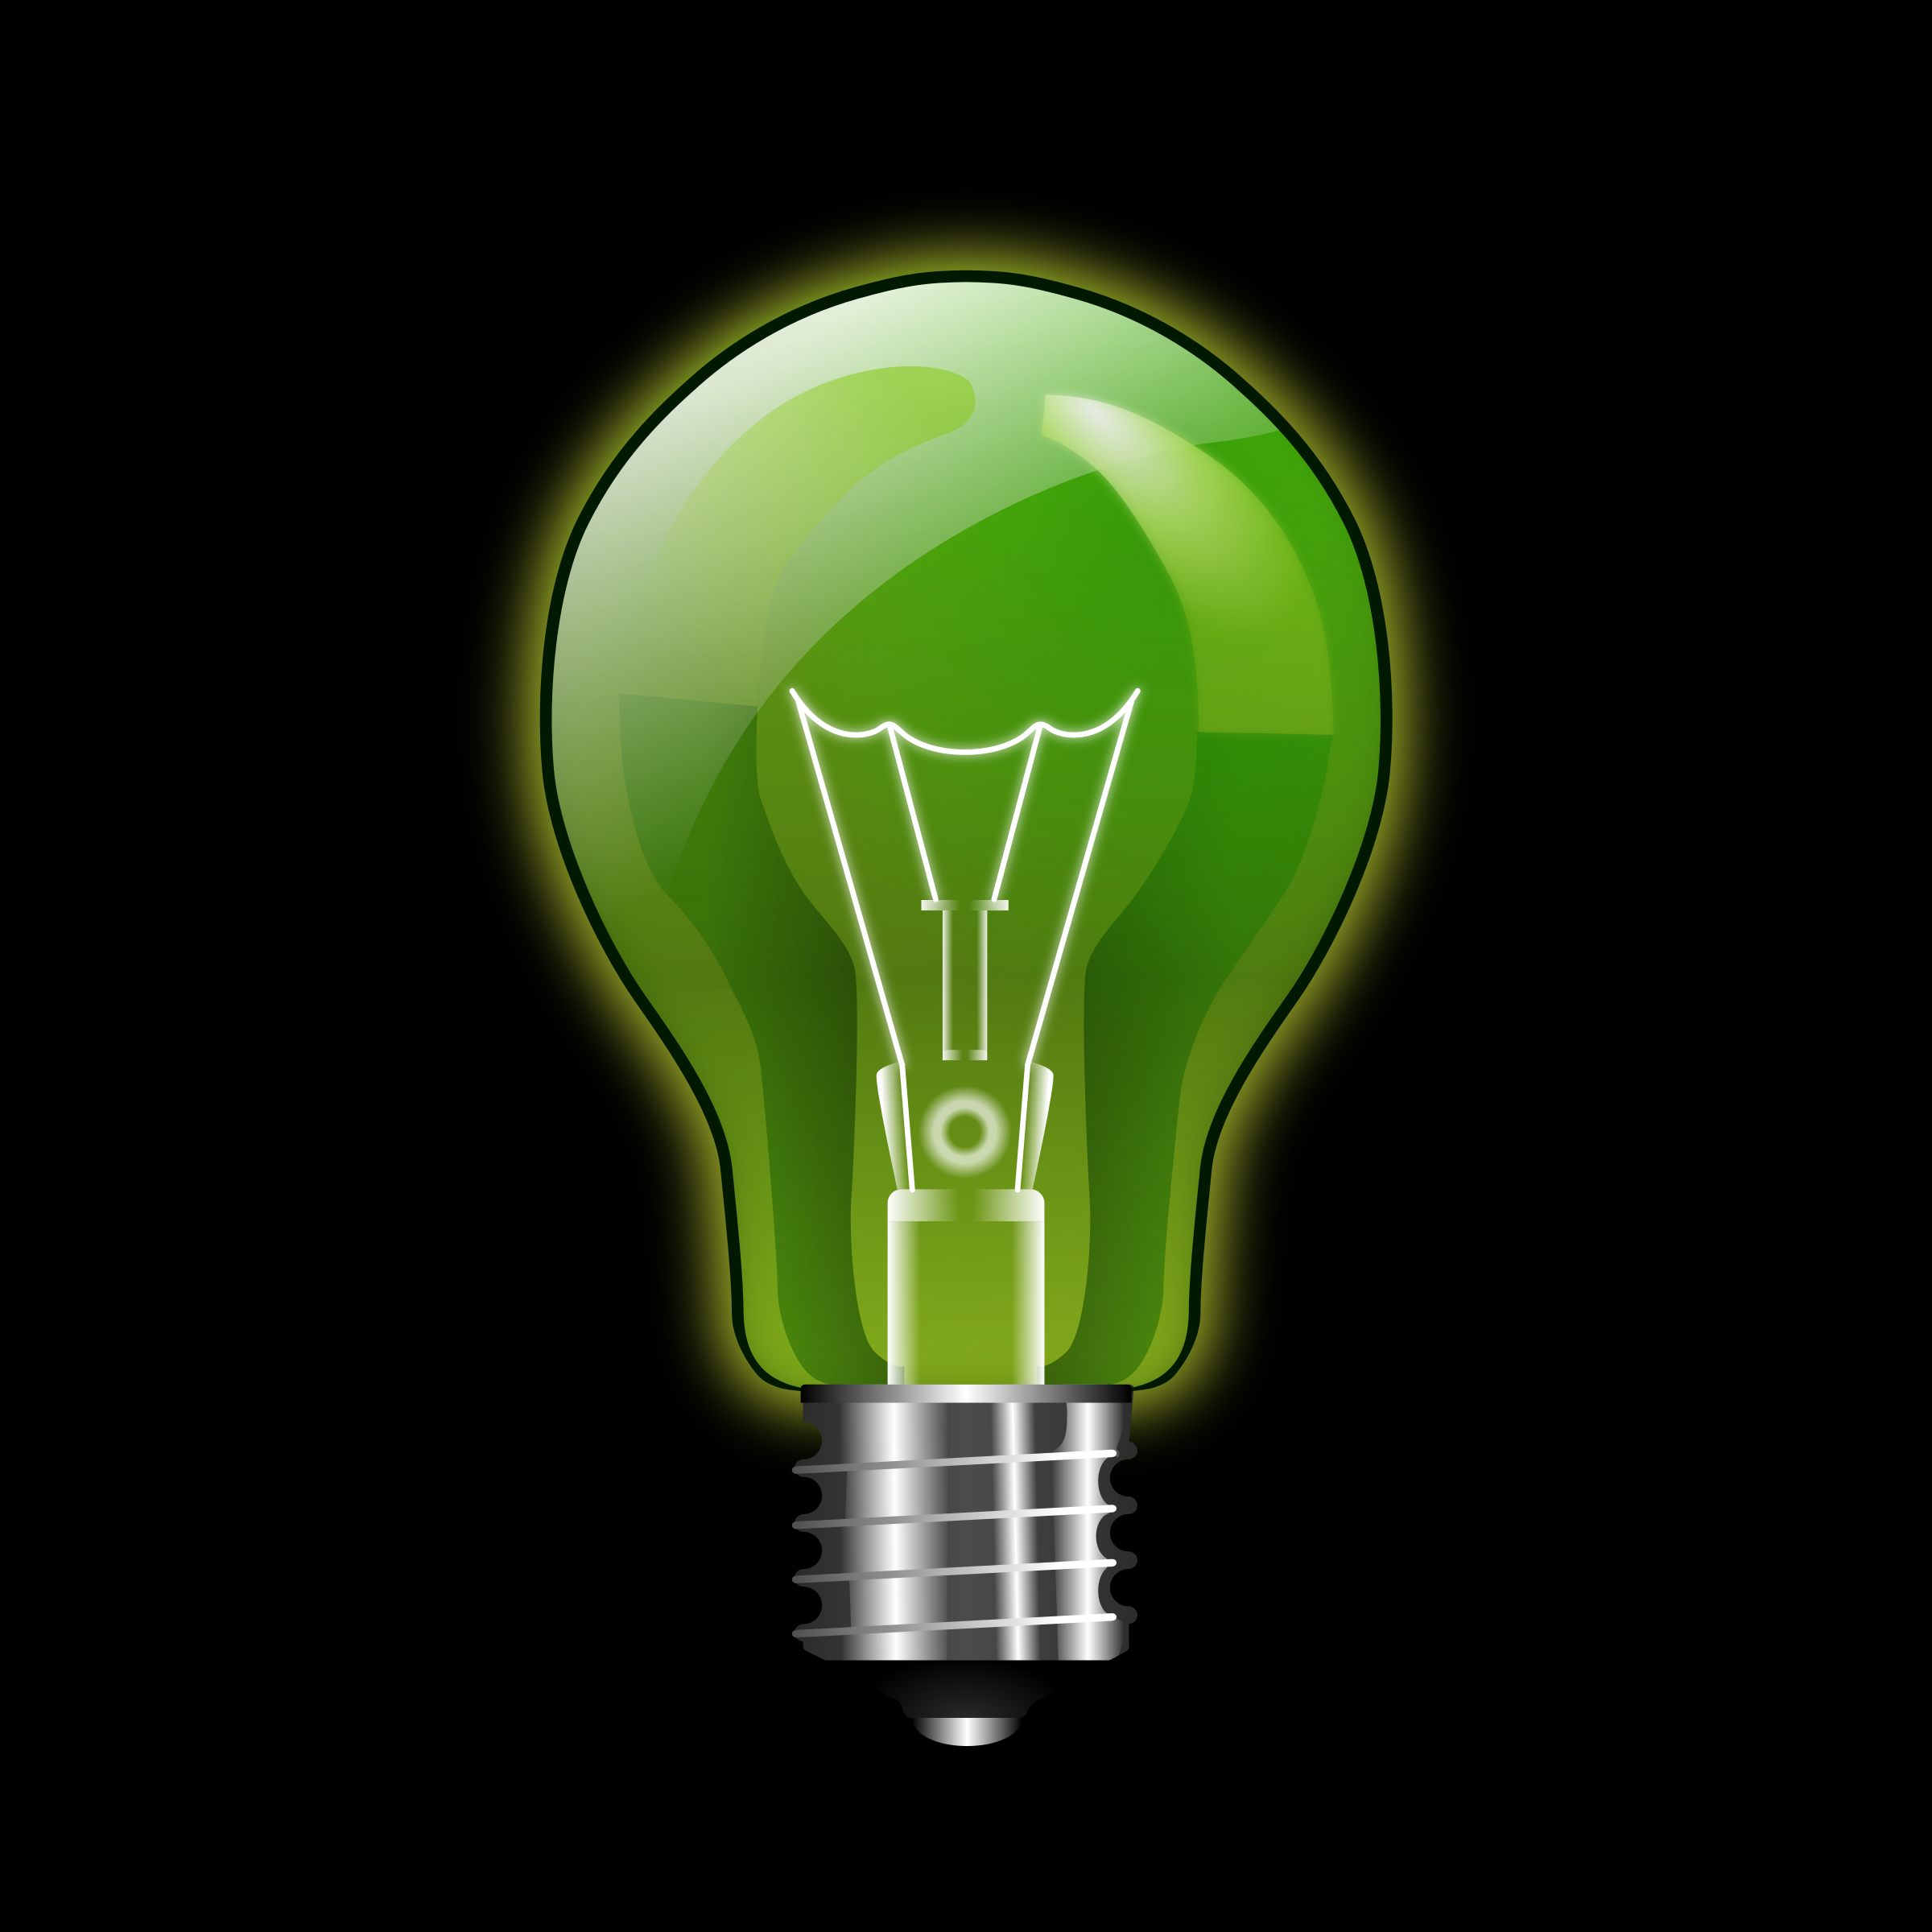 Green lightbulb by kuba